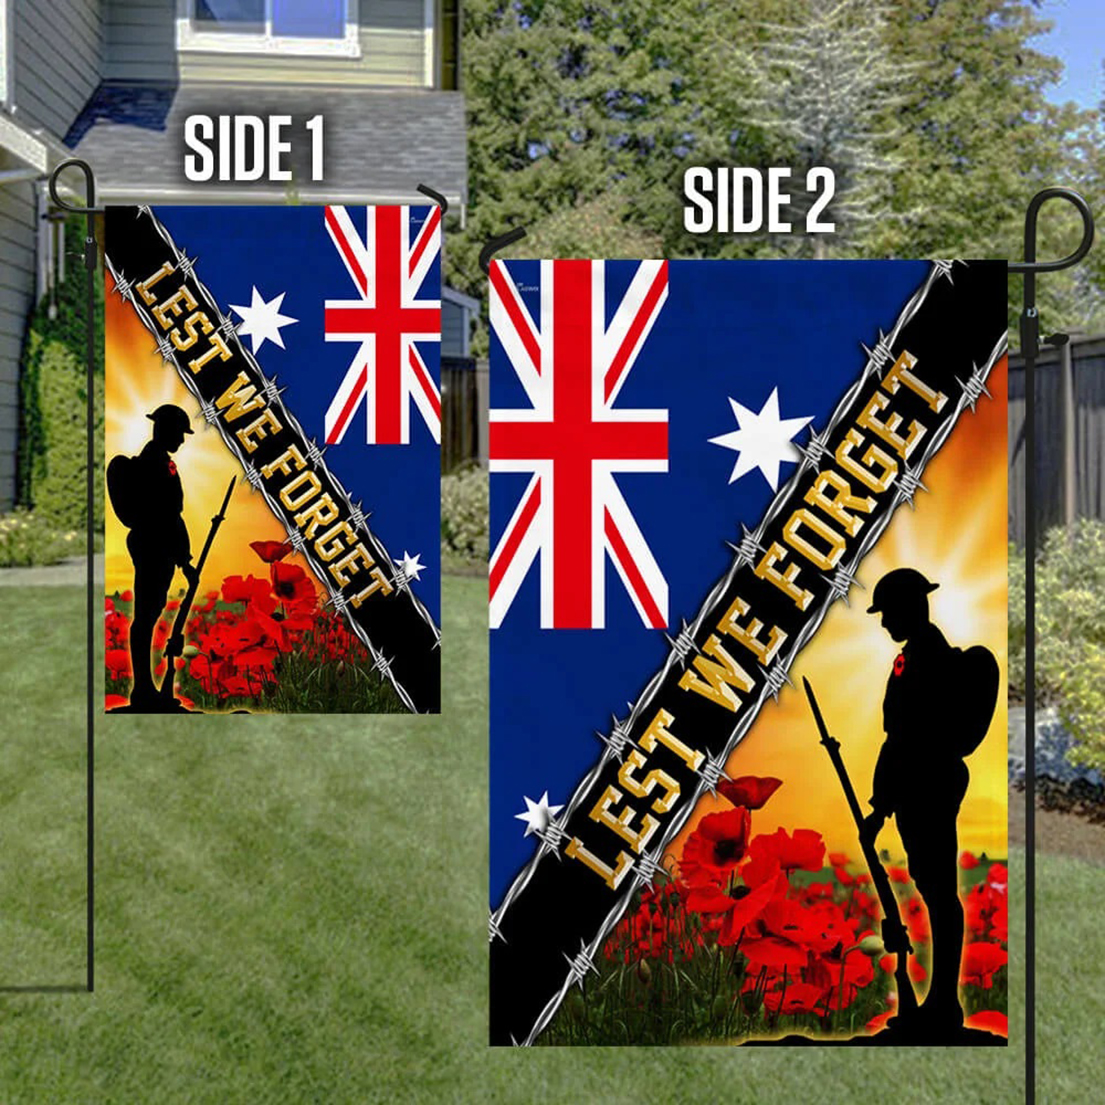 Remembrance day poppy Lest we forget Australia veteran flag - Picture 1